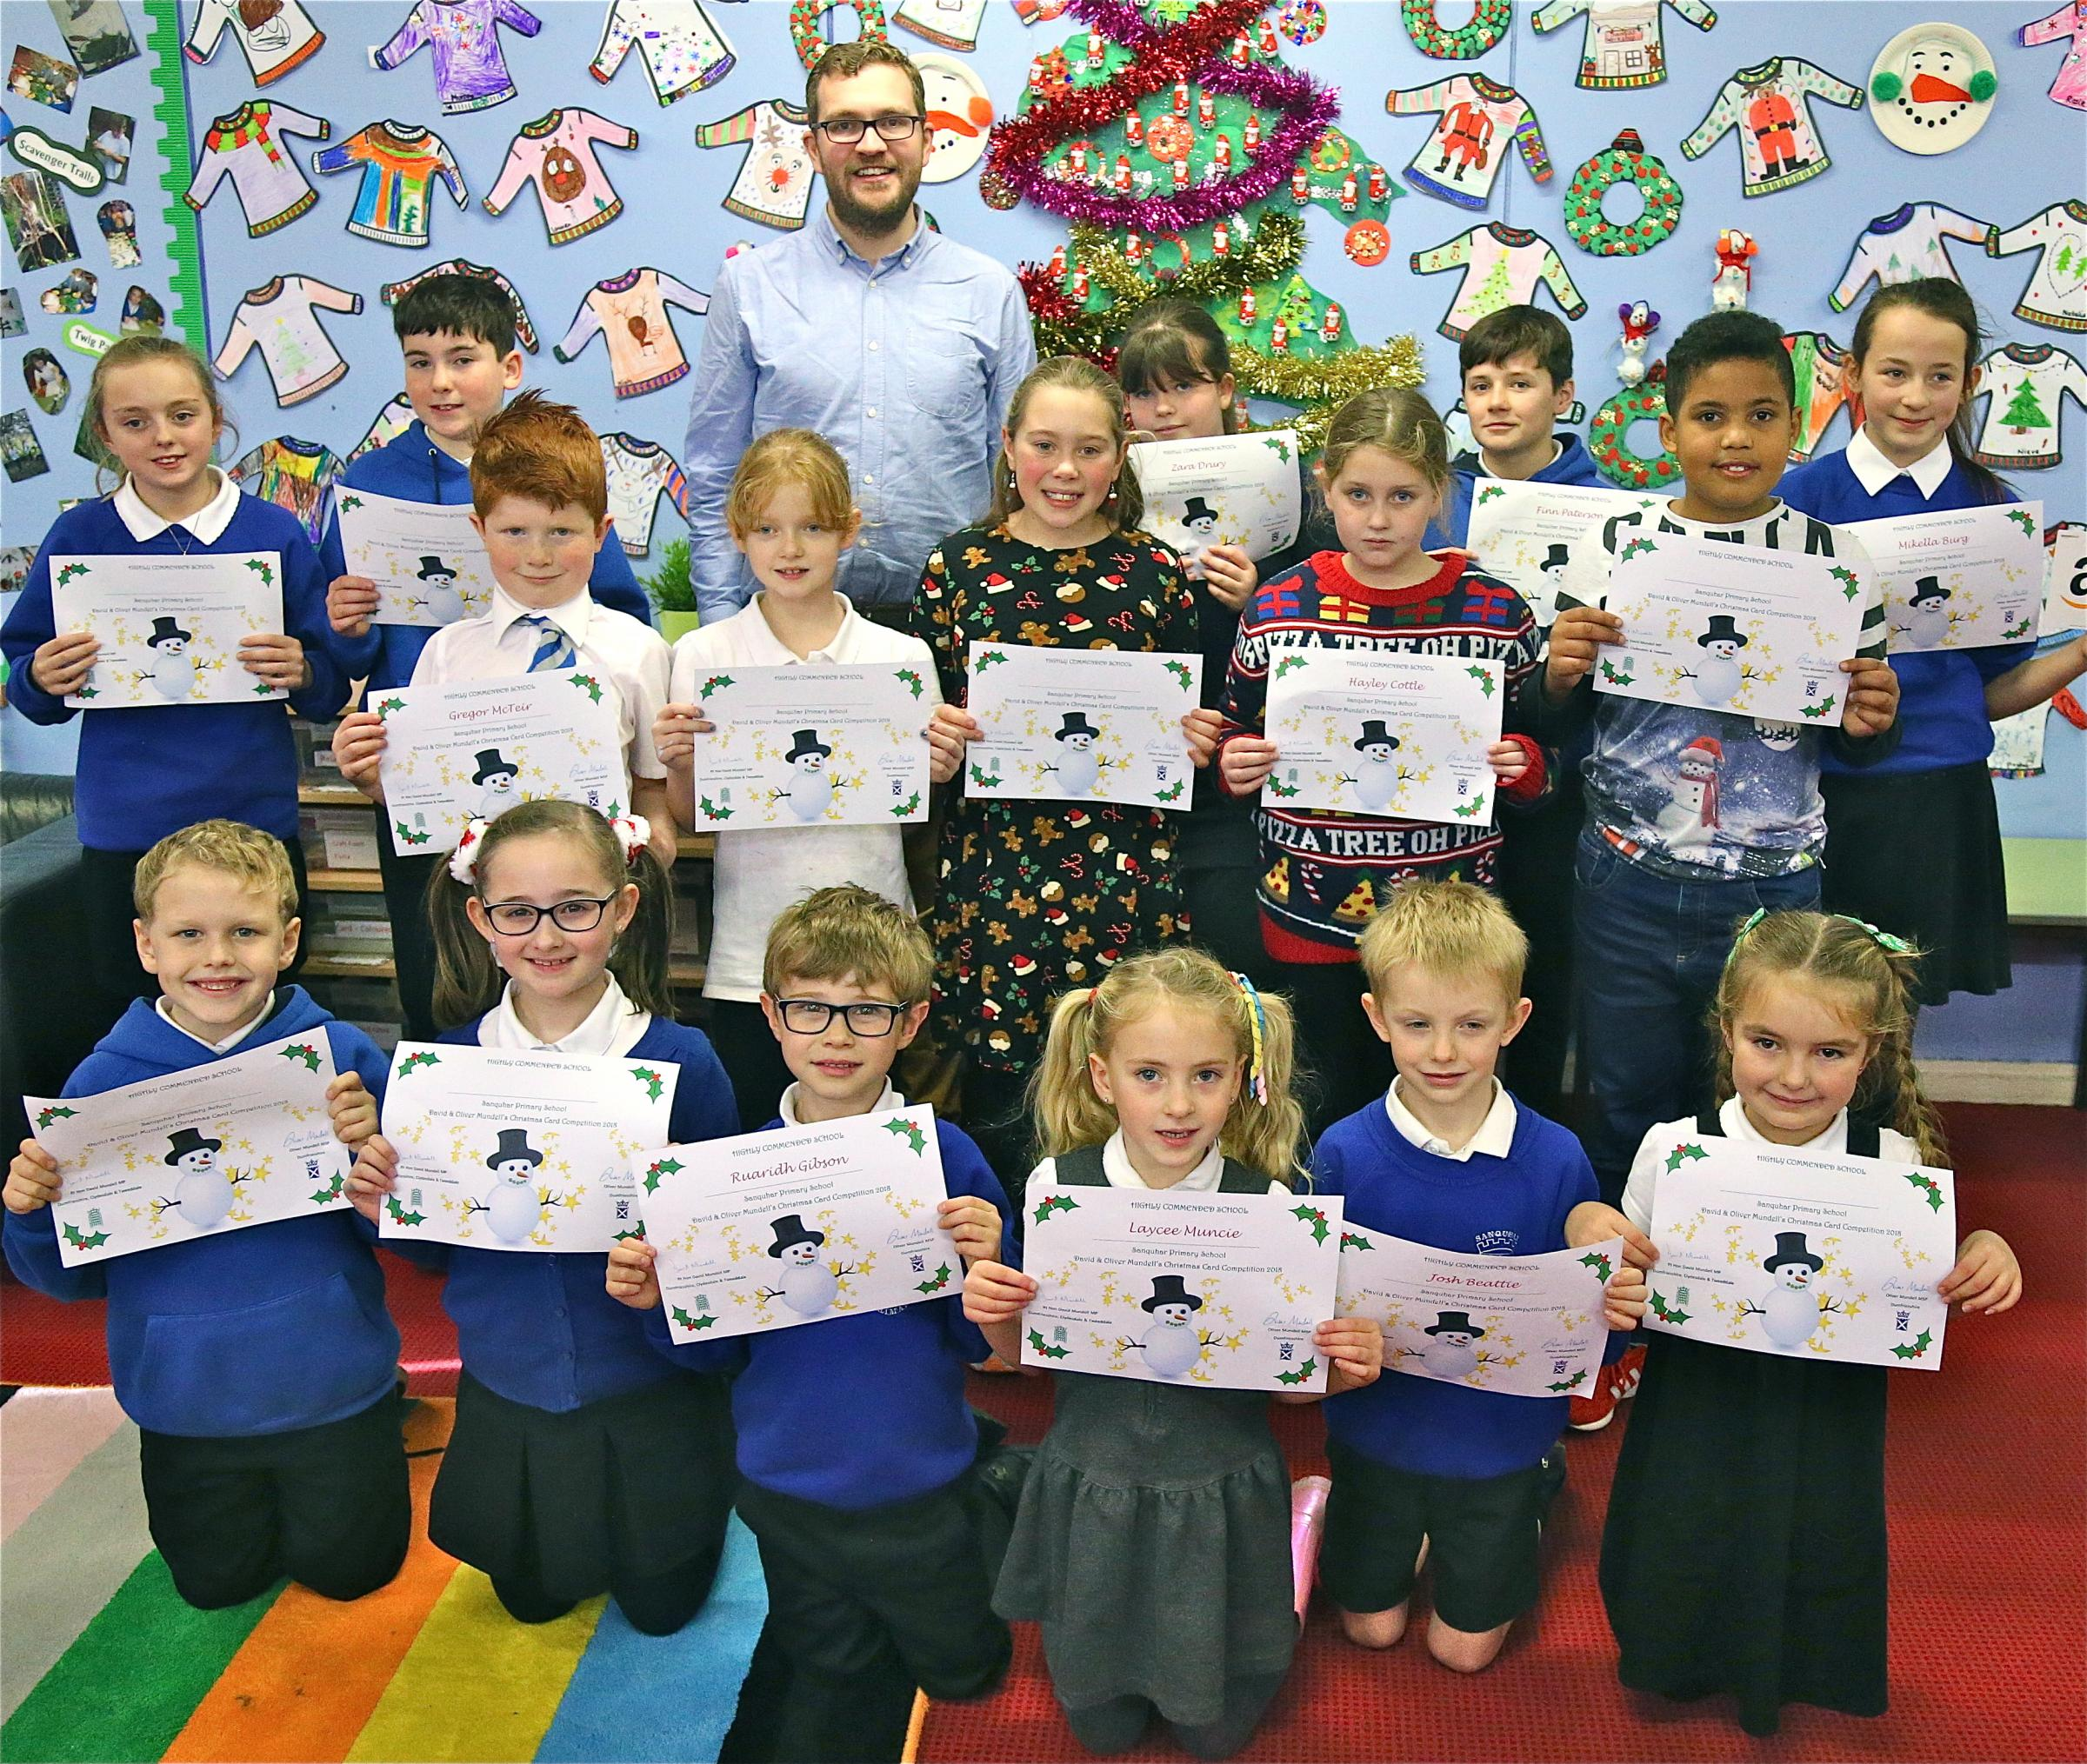 GRAND DESIGNS: Some of the pupils at Sanquhar Primary School who received Highly Commended School certificates this week from Dumfriesshire MSP Oliver Mundell, pictured back.